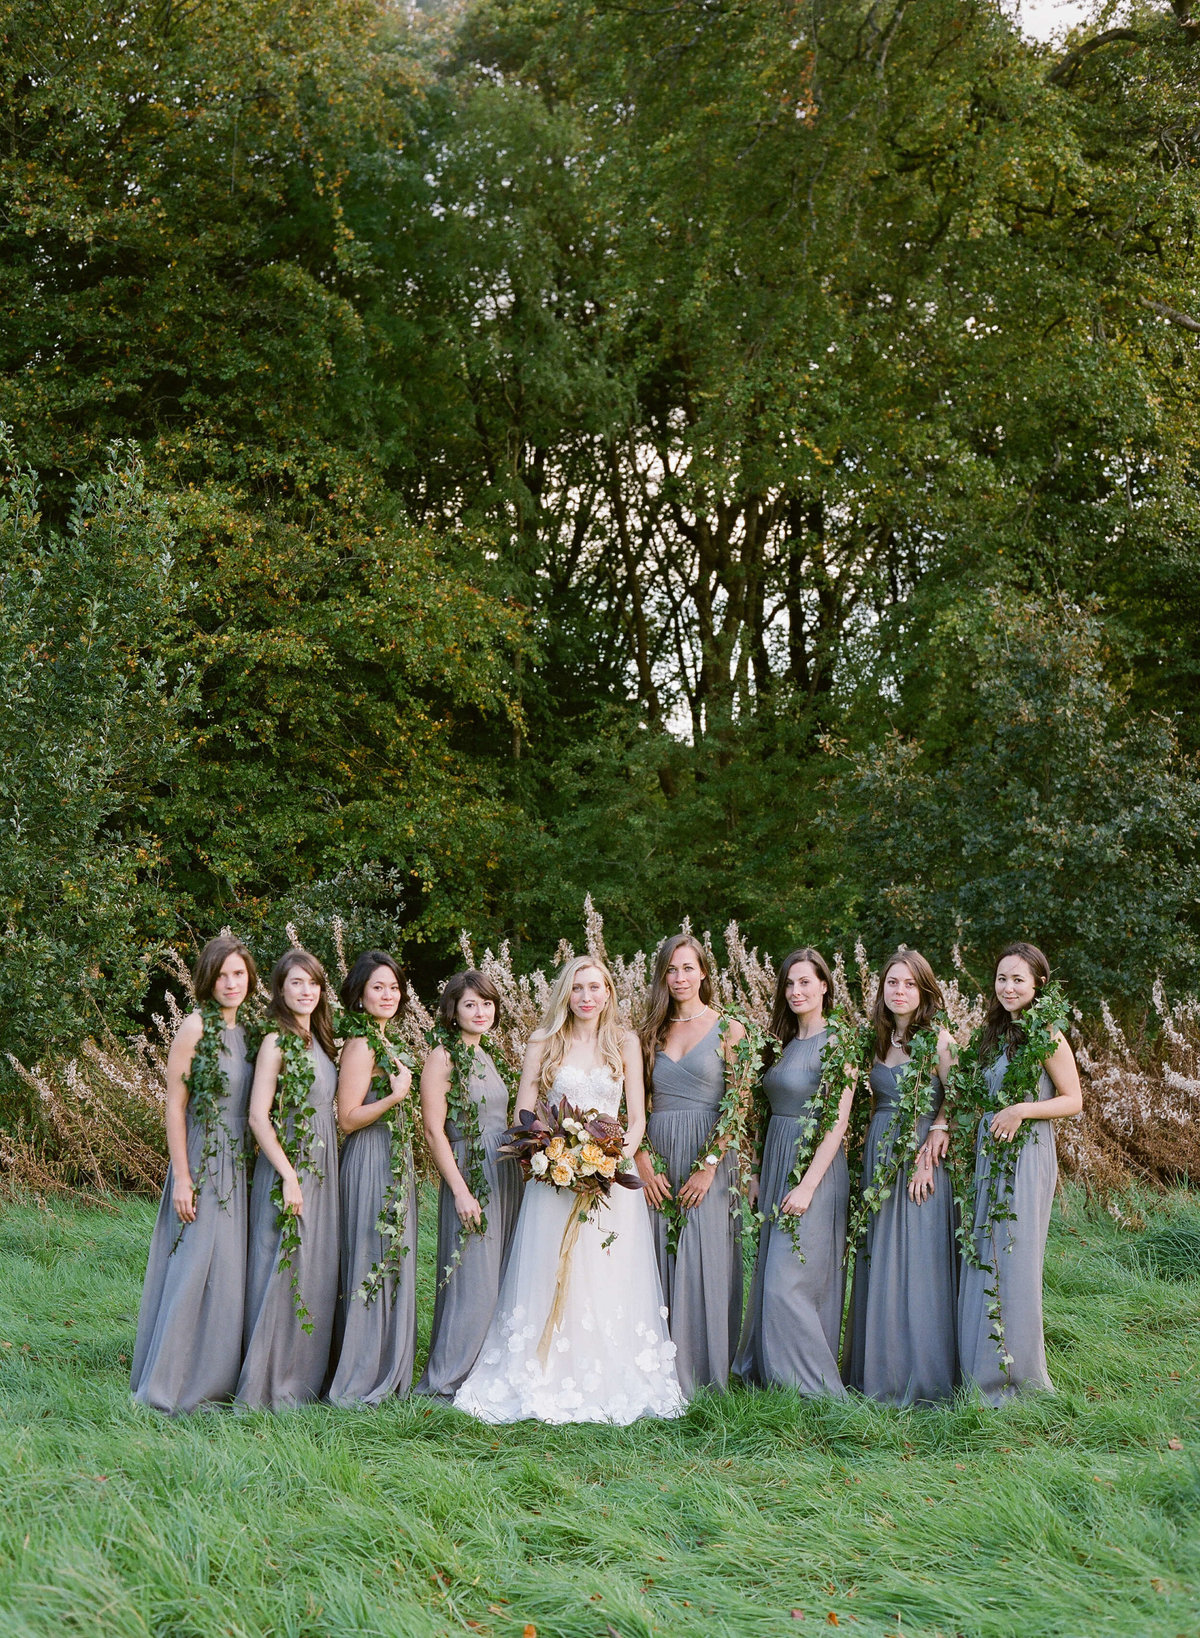 46-KTMerry-destination-weddings-bridal-party-Ireland